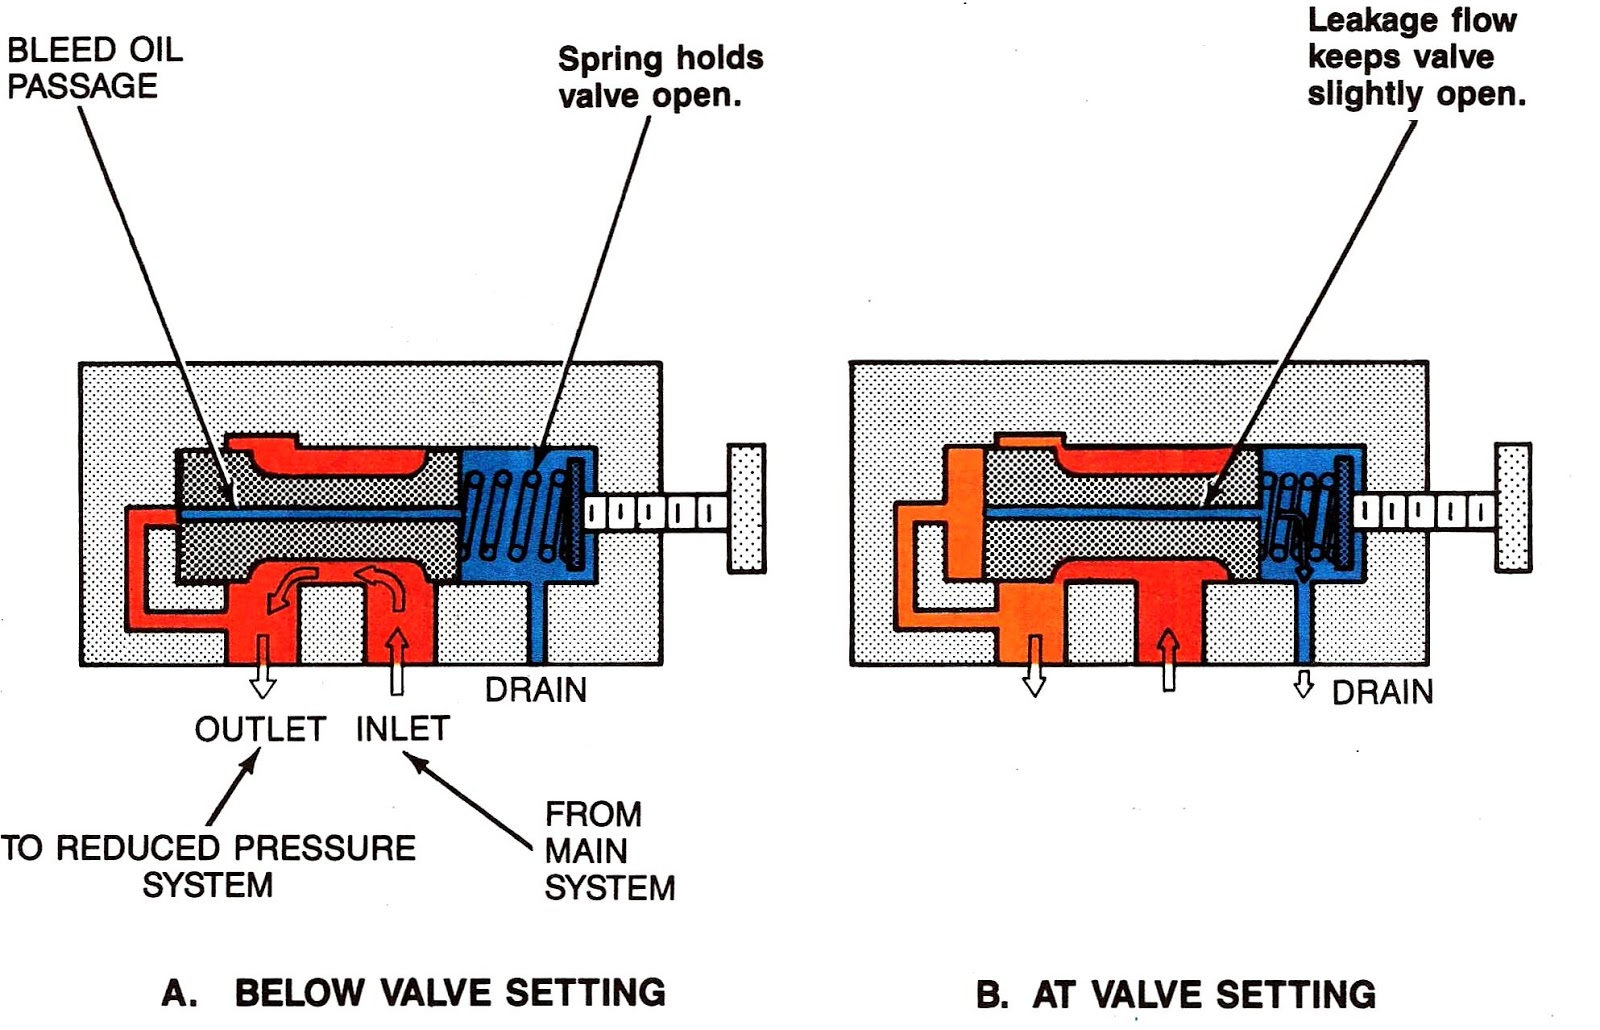 Spooling In Operating System With Diagram 2005 Jeep Grand Cherokee Starter Wiring Mariners Repository Hydraulics 2 Pressure Control